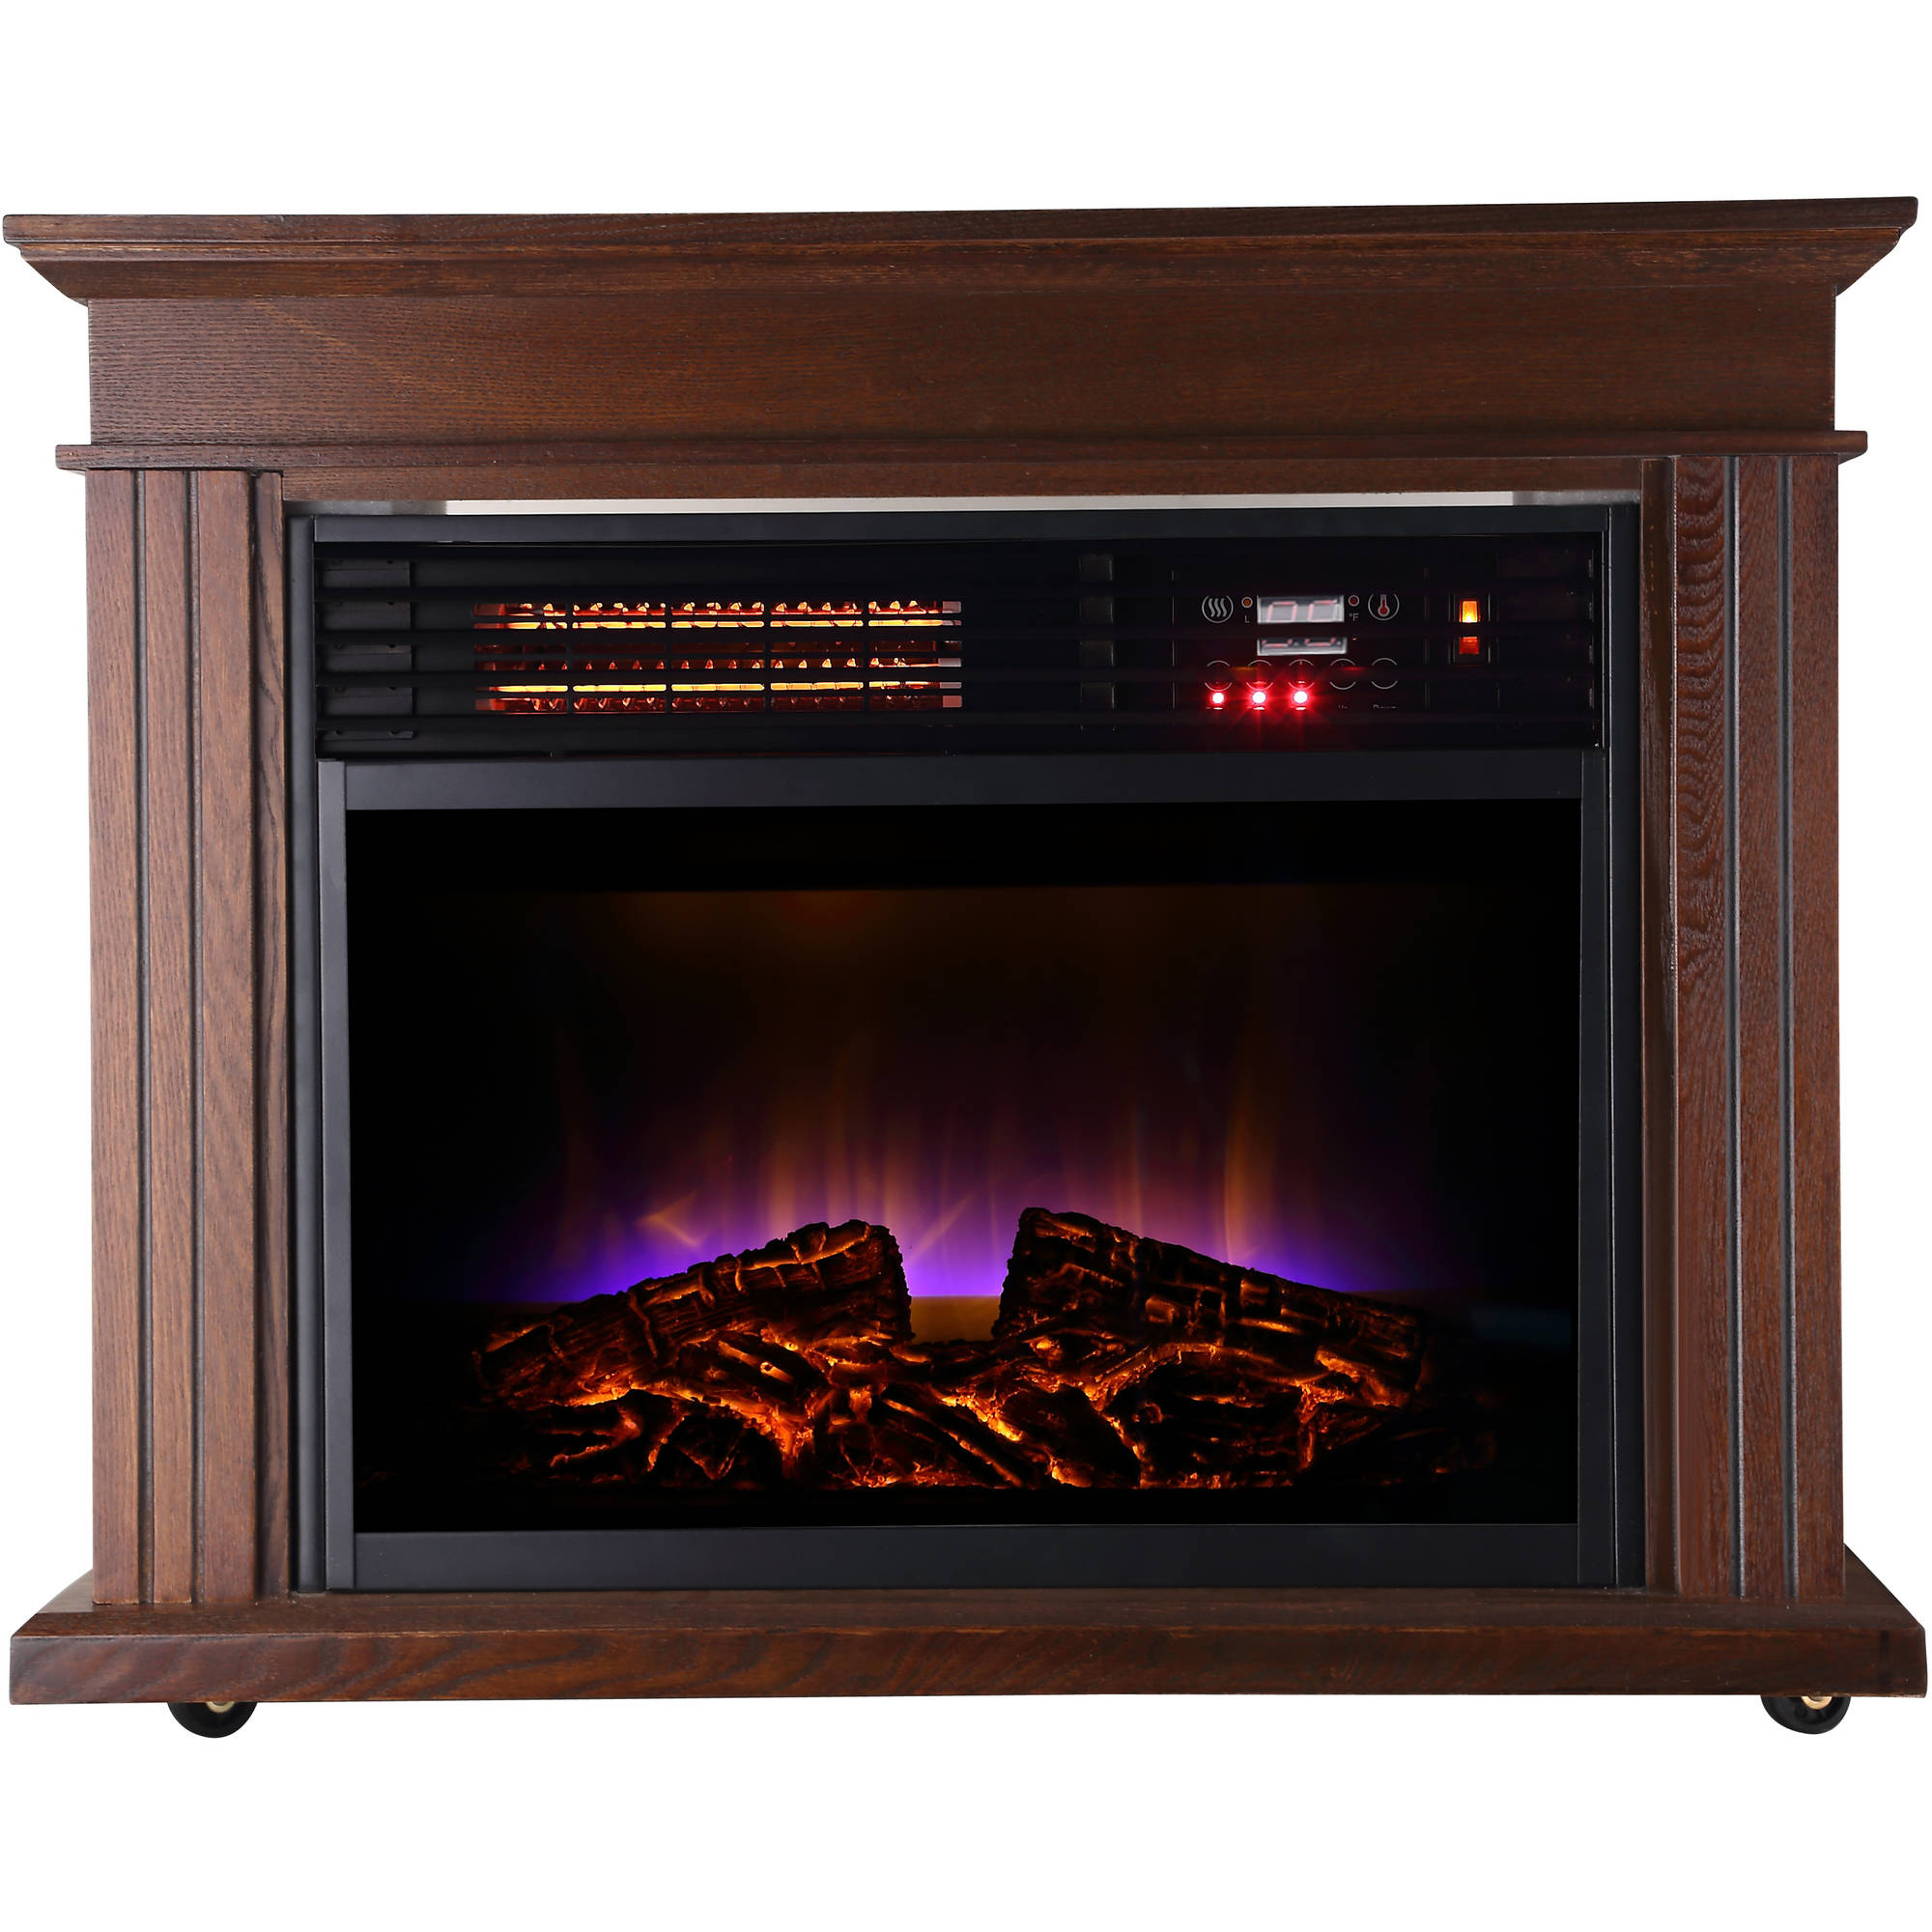 LifeSmart LifePro Dark Oak 1500 Watt Infrared Electric Portable Space Heater  - Walmart.com